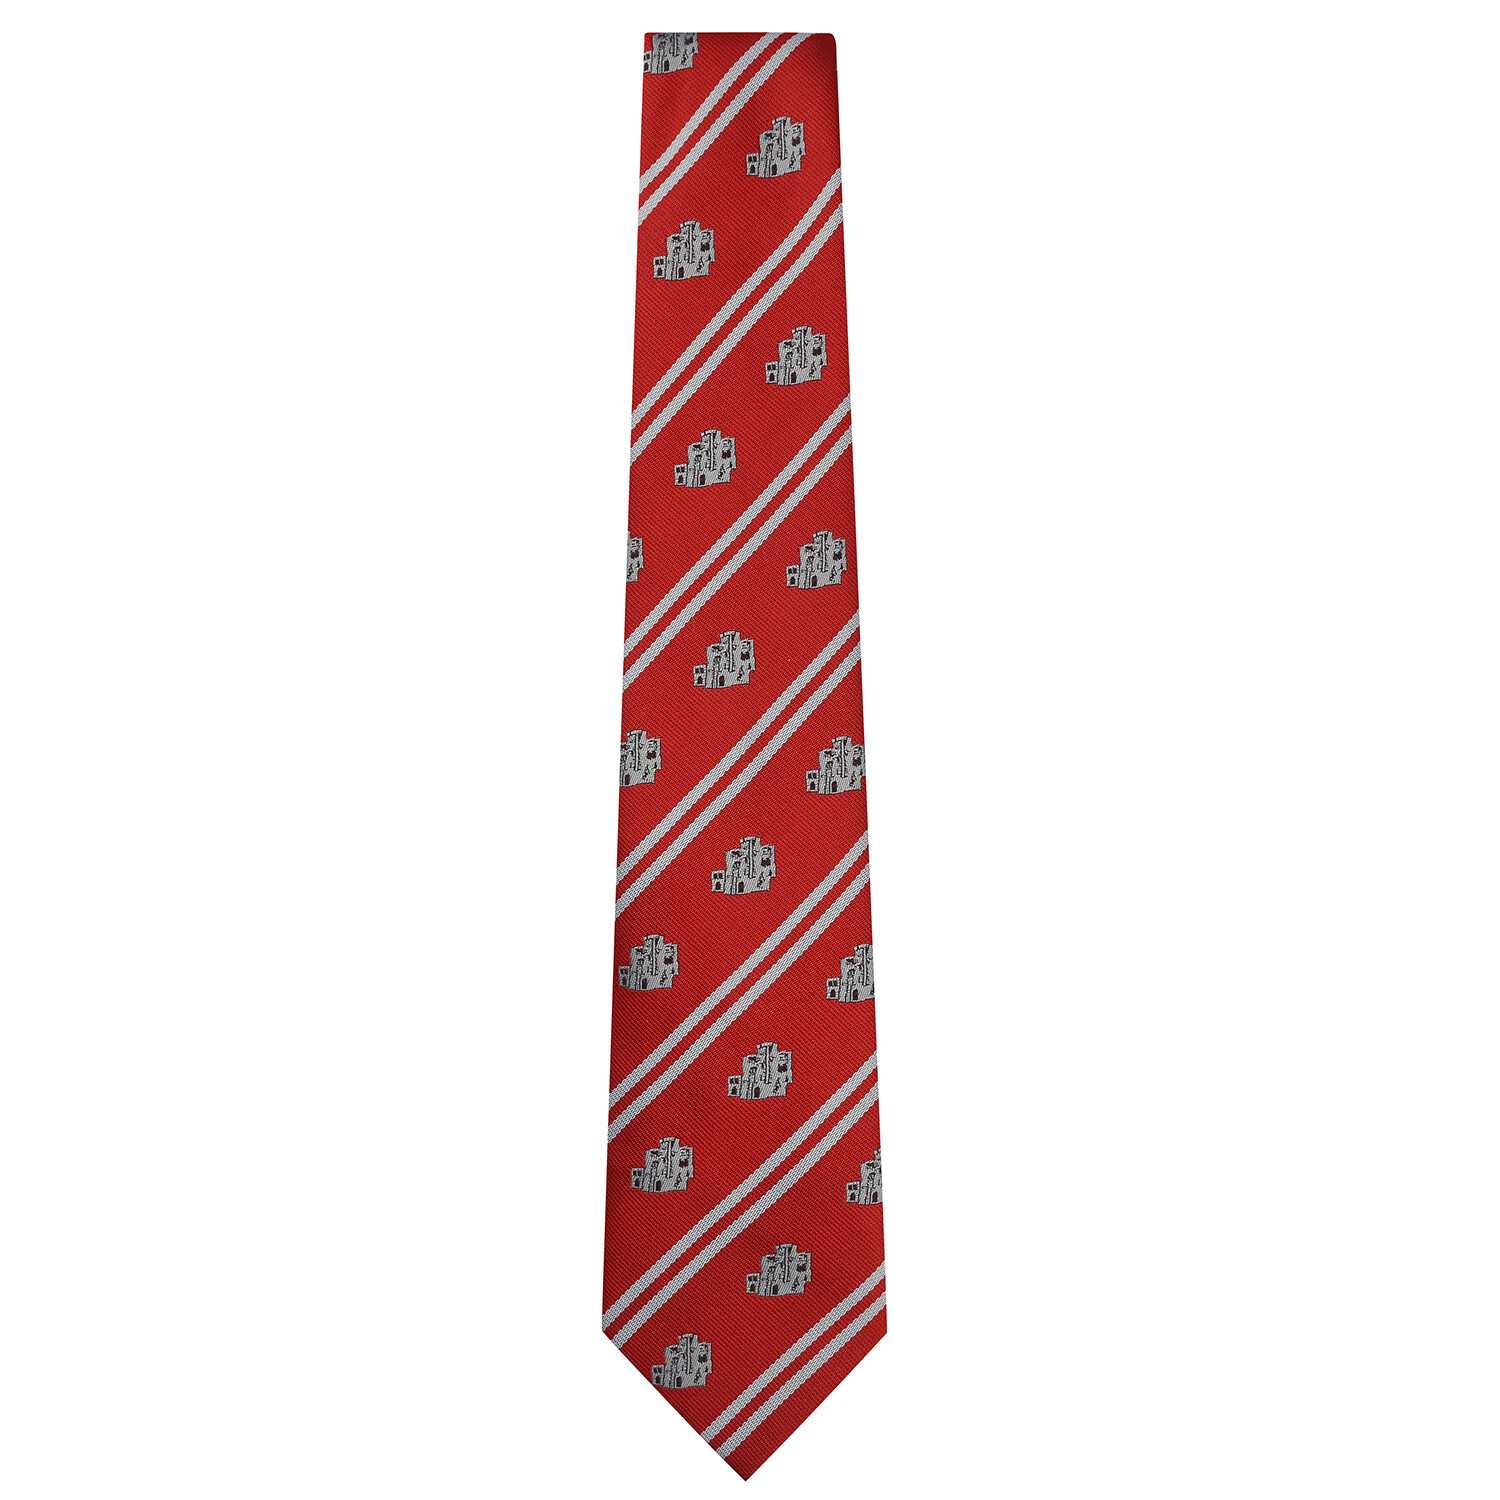 Newark Primary School tie